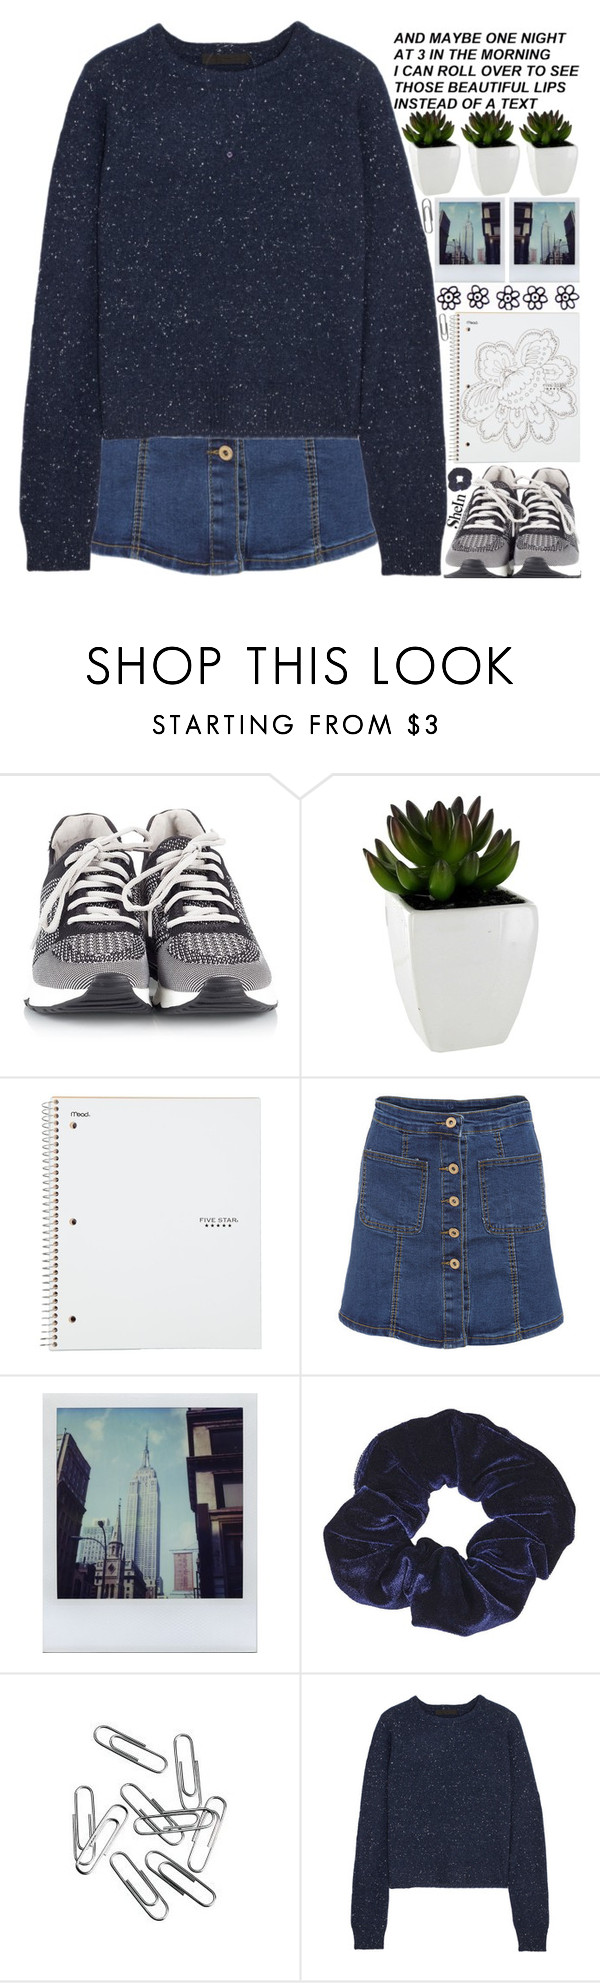 """happy sunday. i love y'all "" by alienbabs ❤ liked on Polyvore featuring Ash, Polaroid, Topshop, Alexander Wang, clean, organized and shein"